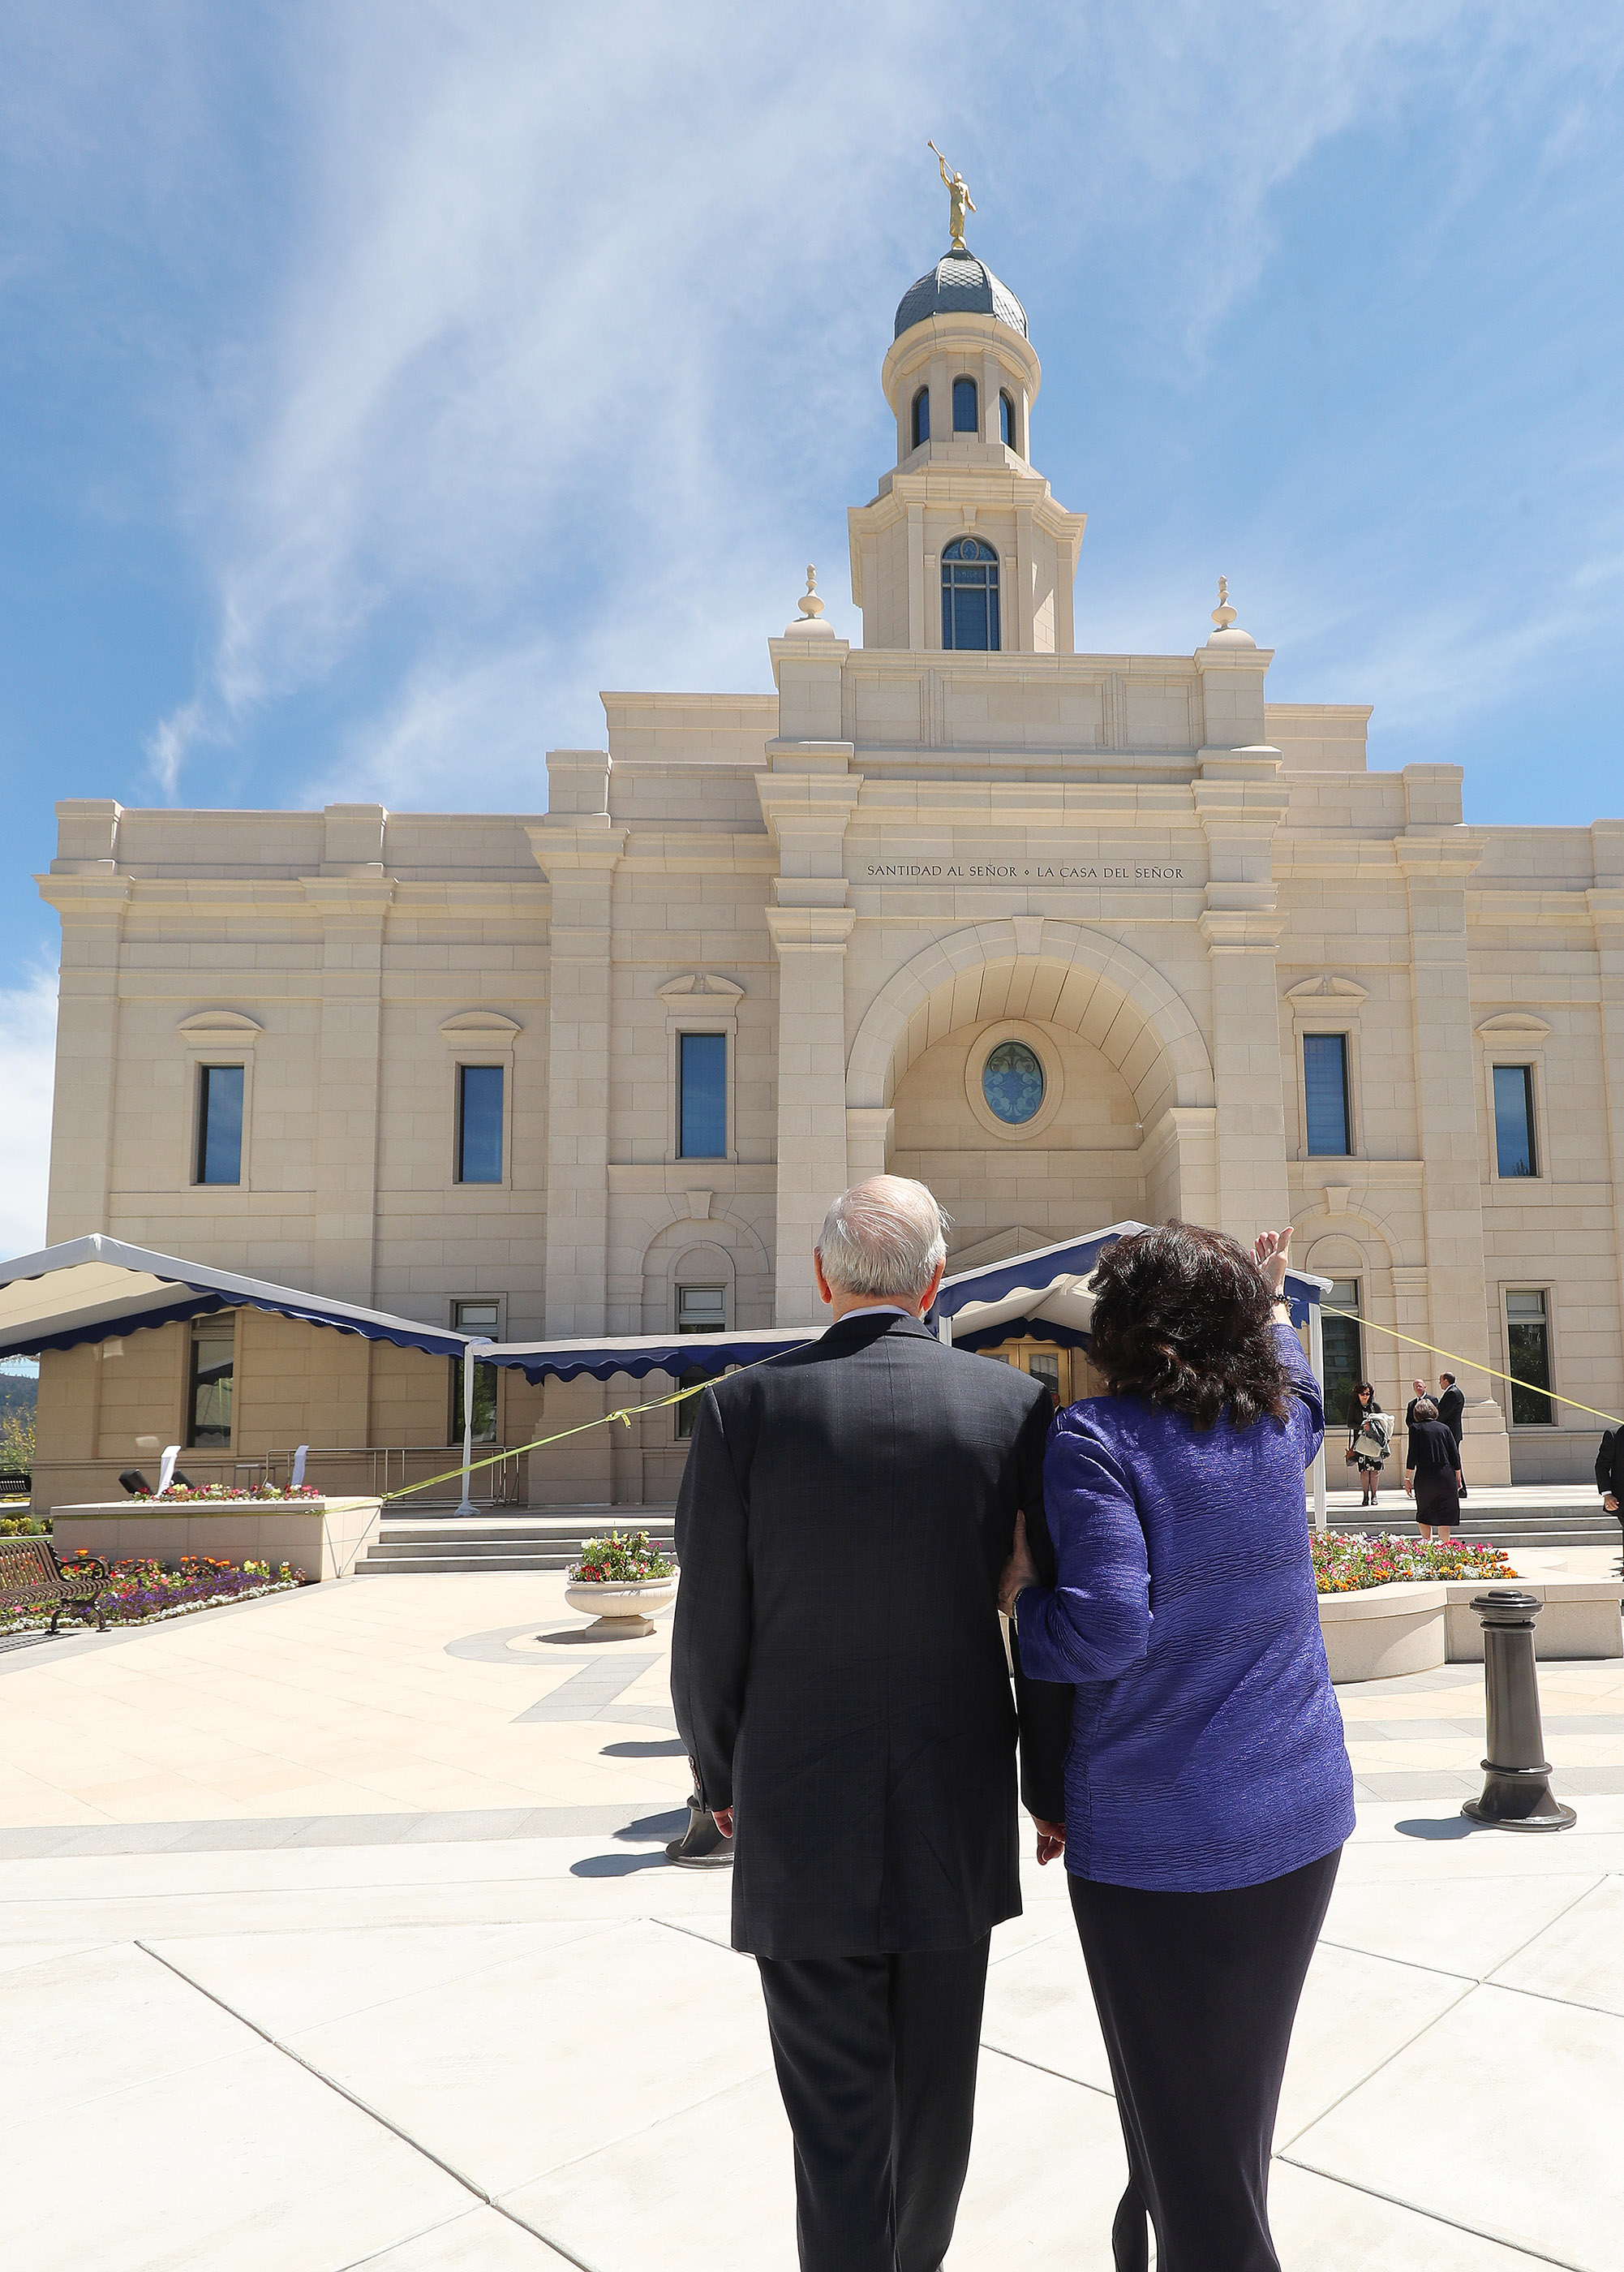 President Russell M. Nelson of The Church of Jesus Christ of Latter-day Saints and his wife Sister Wendy Nelson walk near the temple in Concepcion, Chili on Saturday, Oct. 27, 2018.